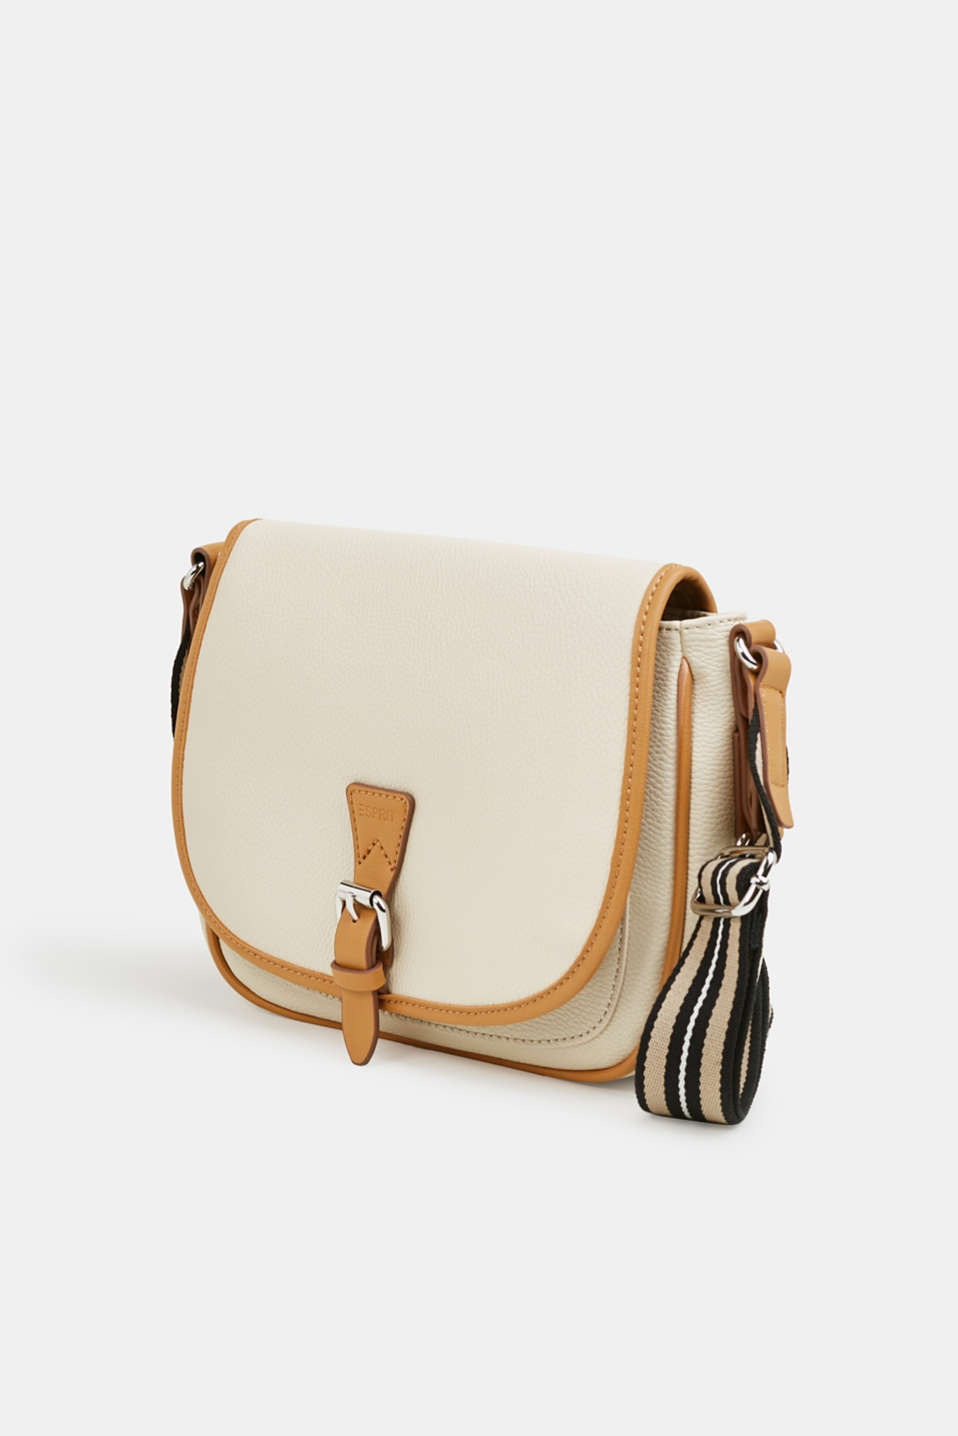 Susie T. shoulder bag, CREAM BEIGE, detail image number 2